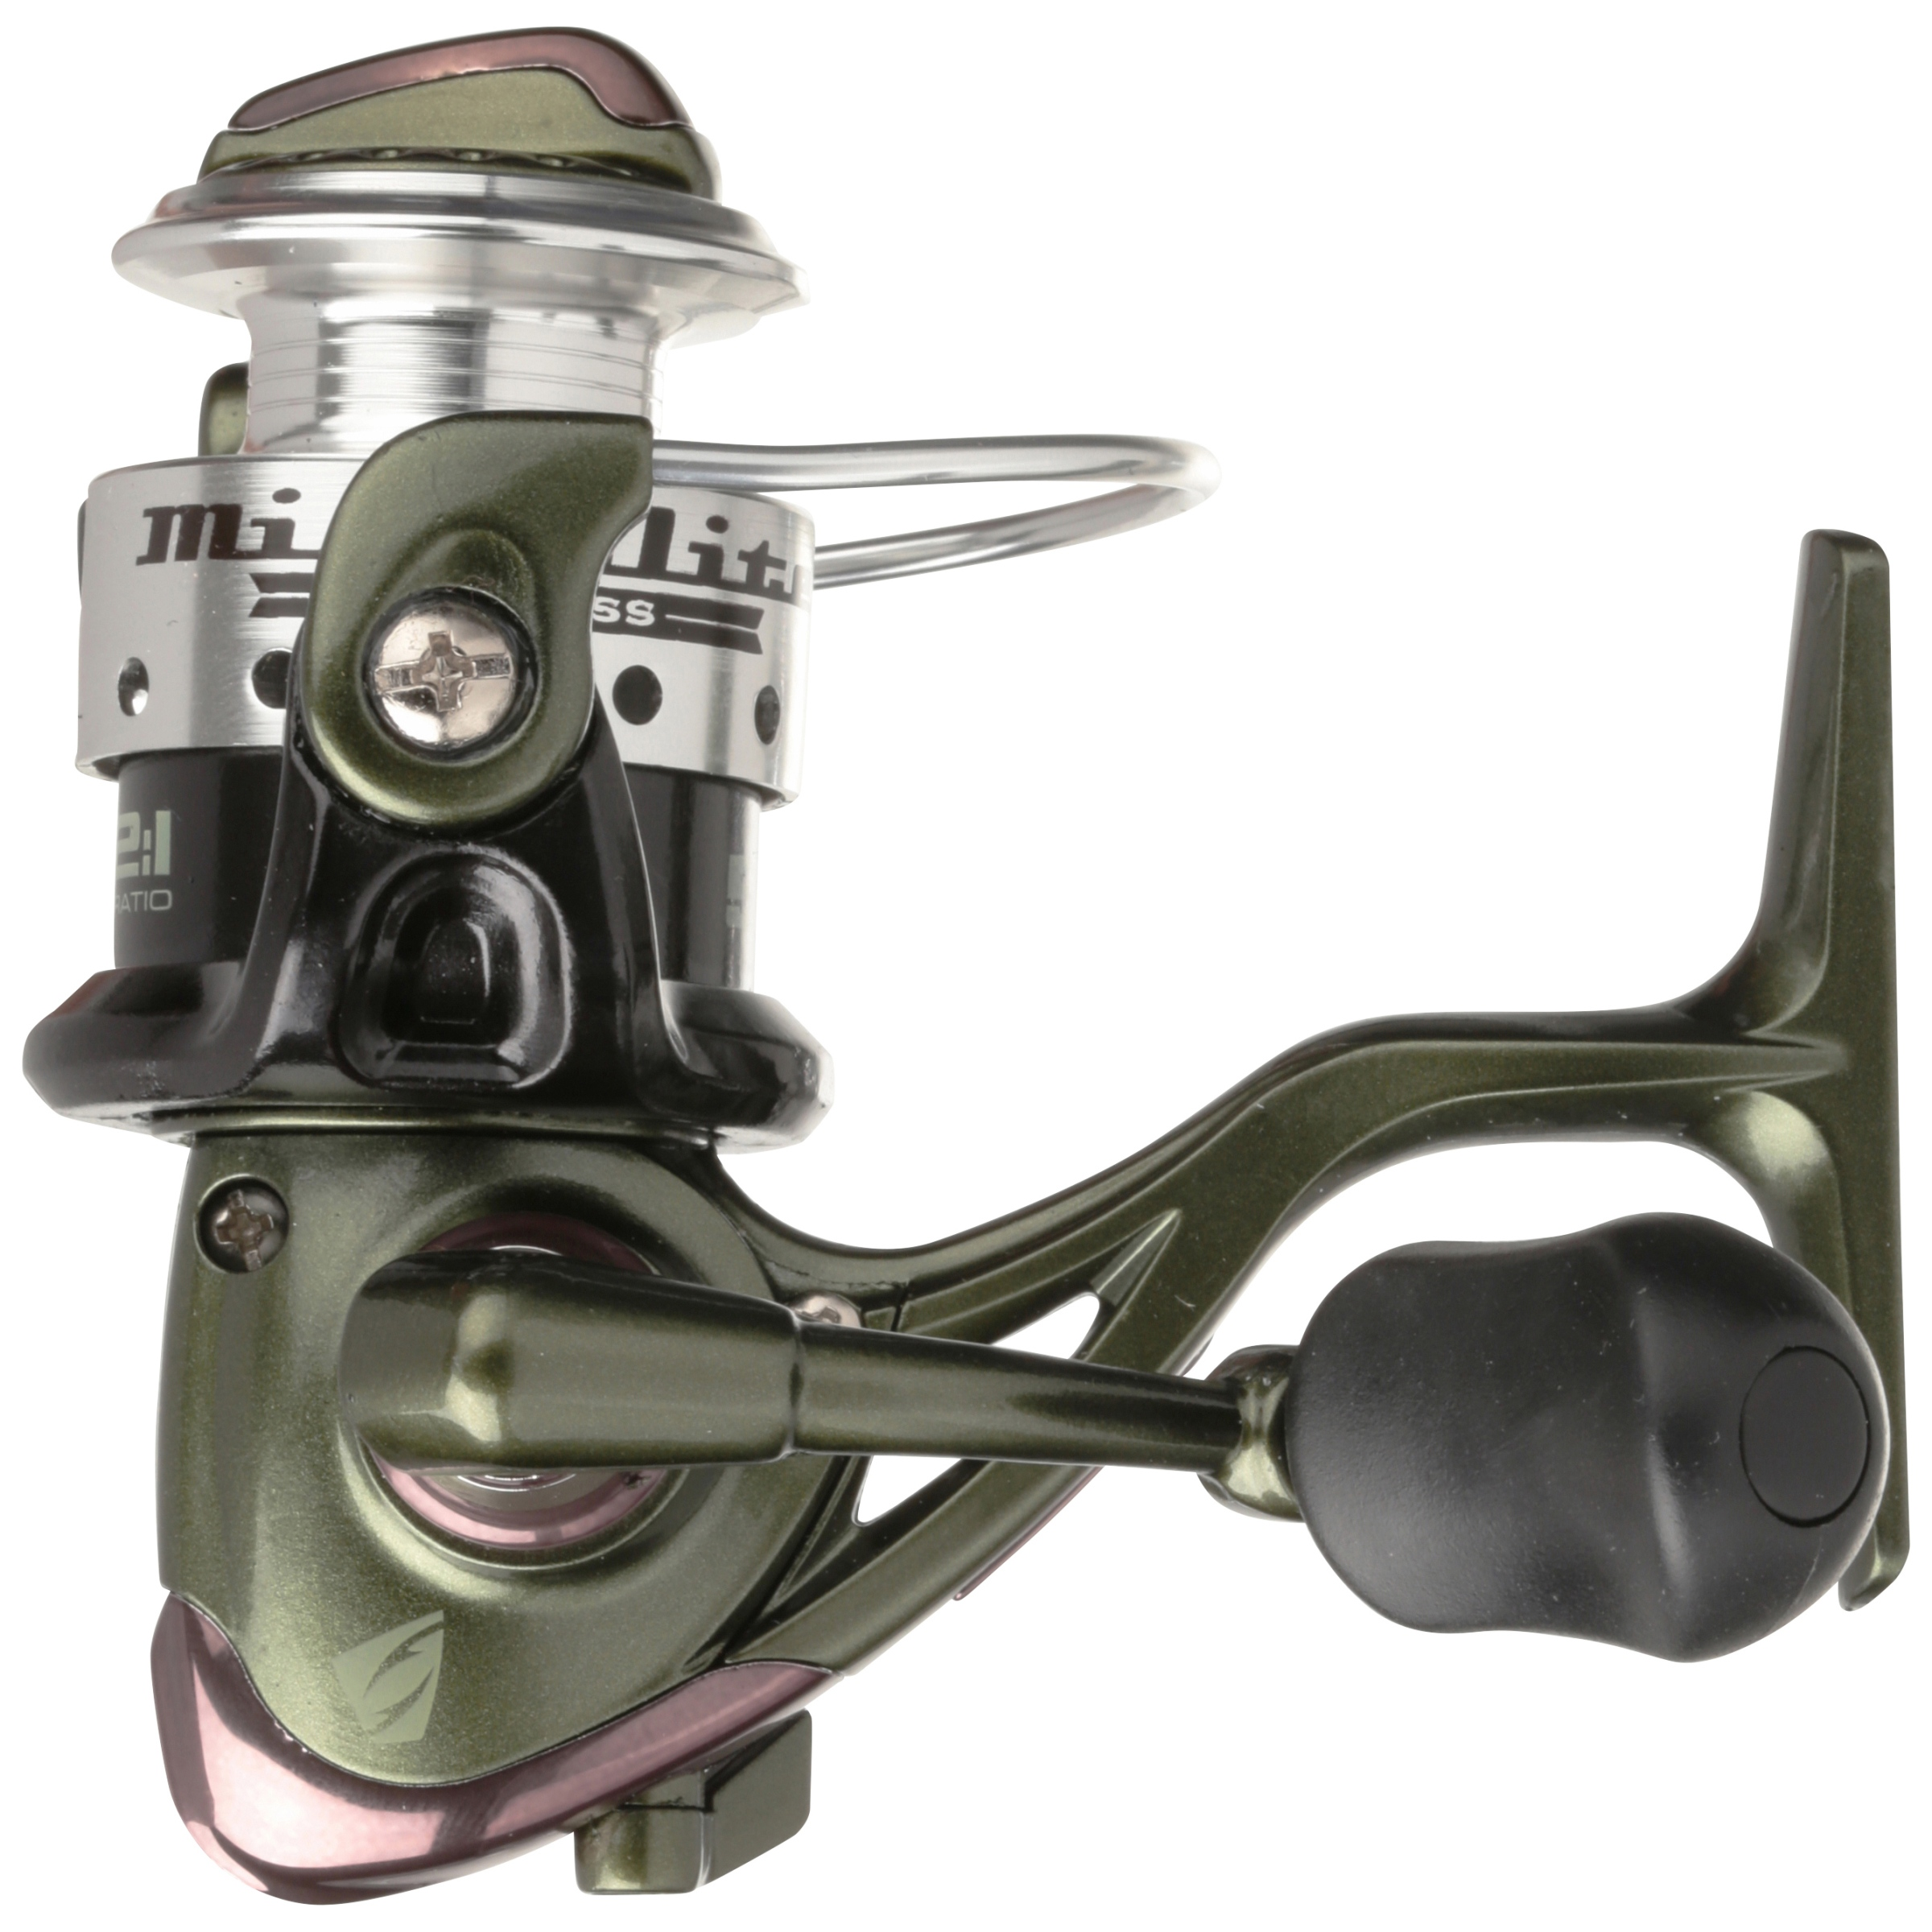 South Bend Microlite S-Class Spinning Reel